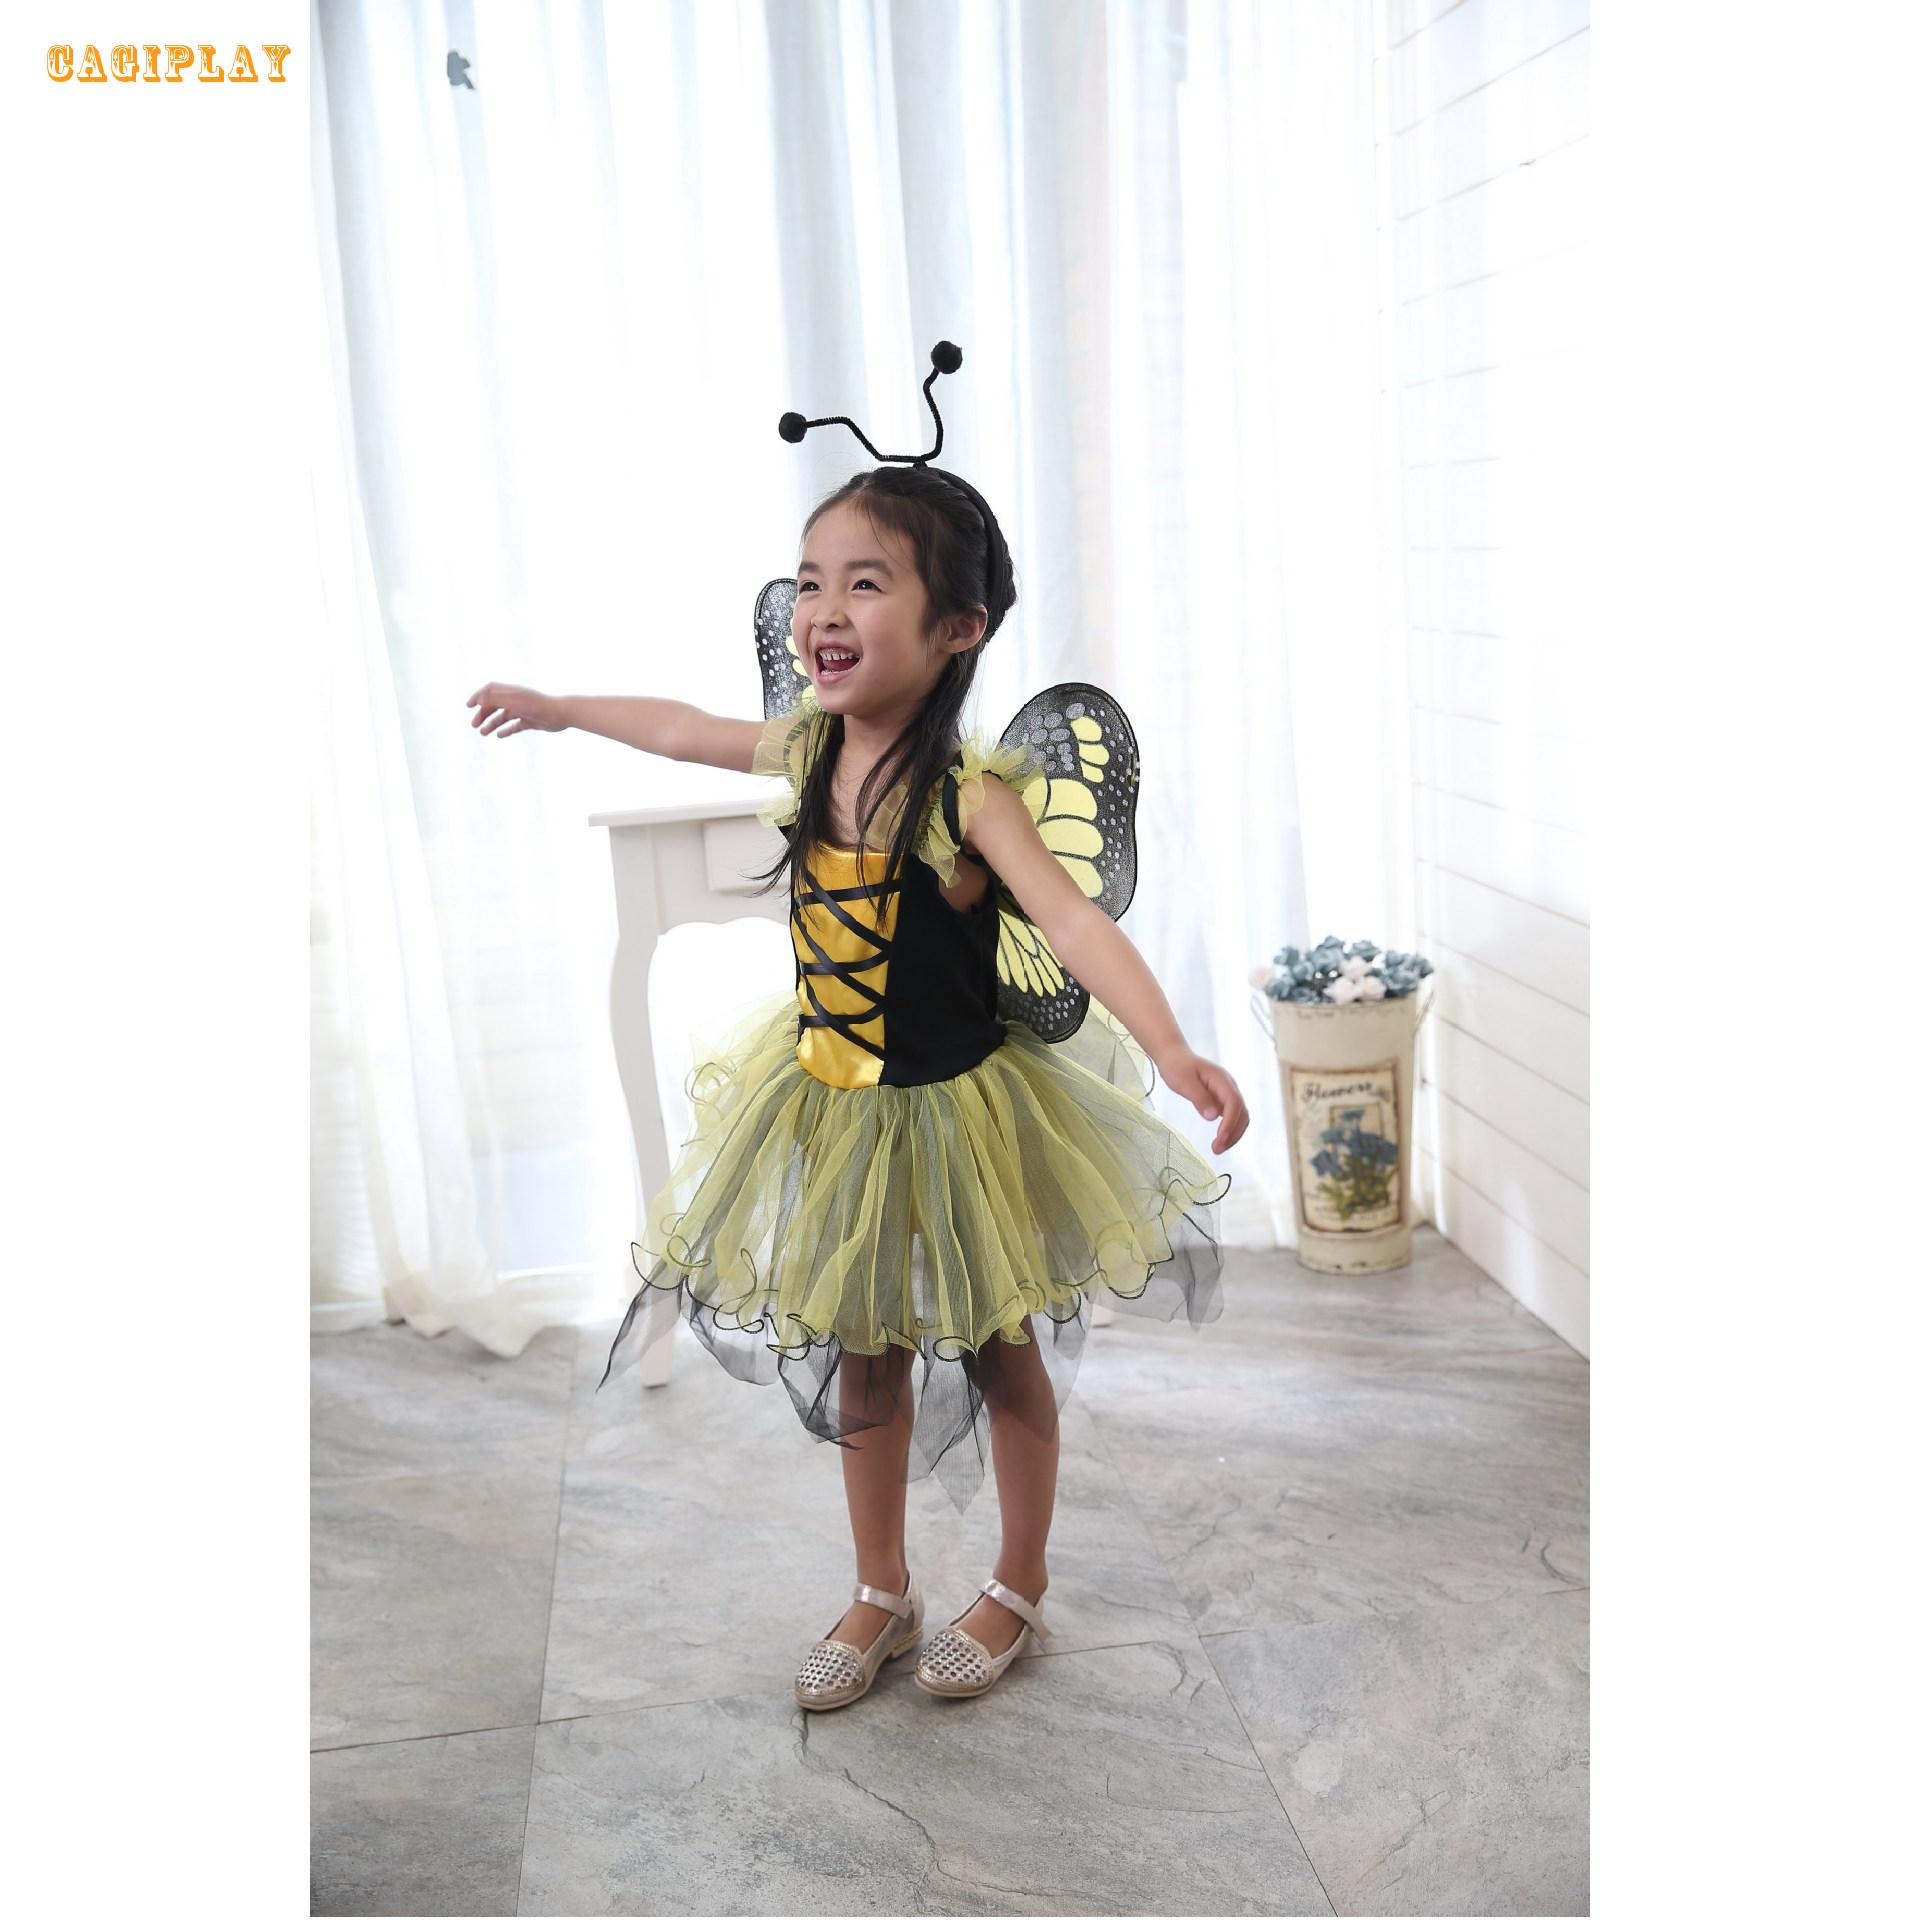 2018 New Deluxe Yellow Butterfly Fairy Princess Dress Girl Carnival Cosplay Clothing Halloween Costume For Kids Age 3-10 Years